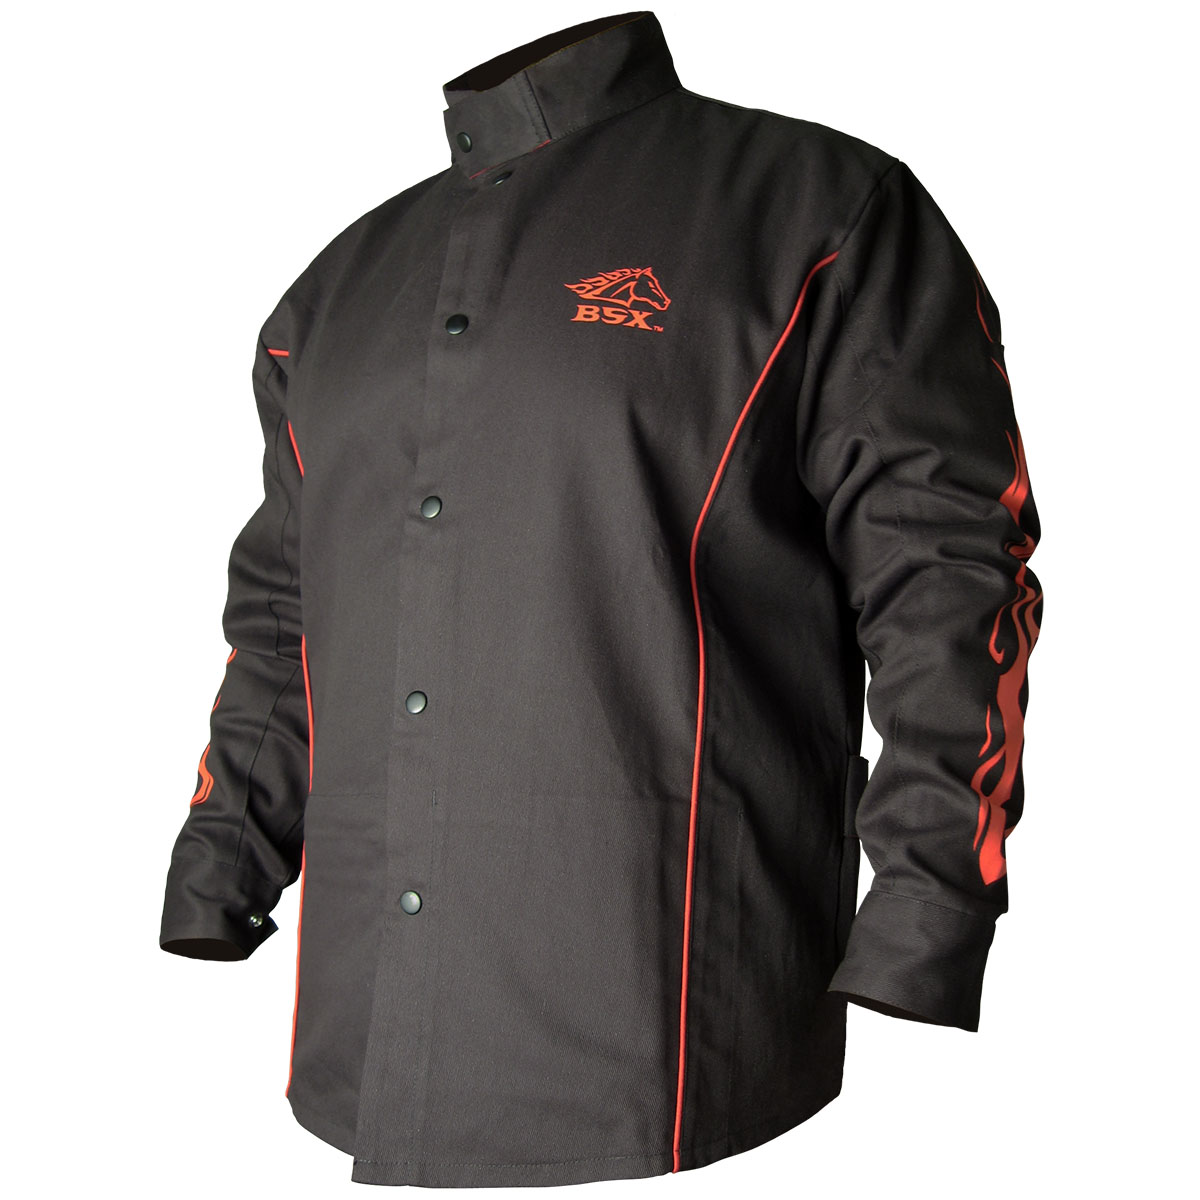 Black Stallion welders jacket black with flames